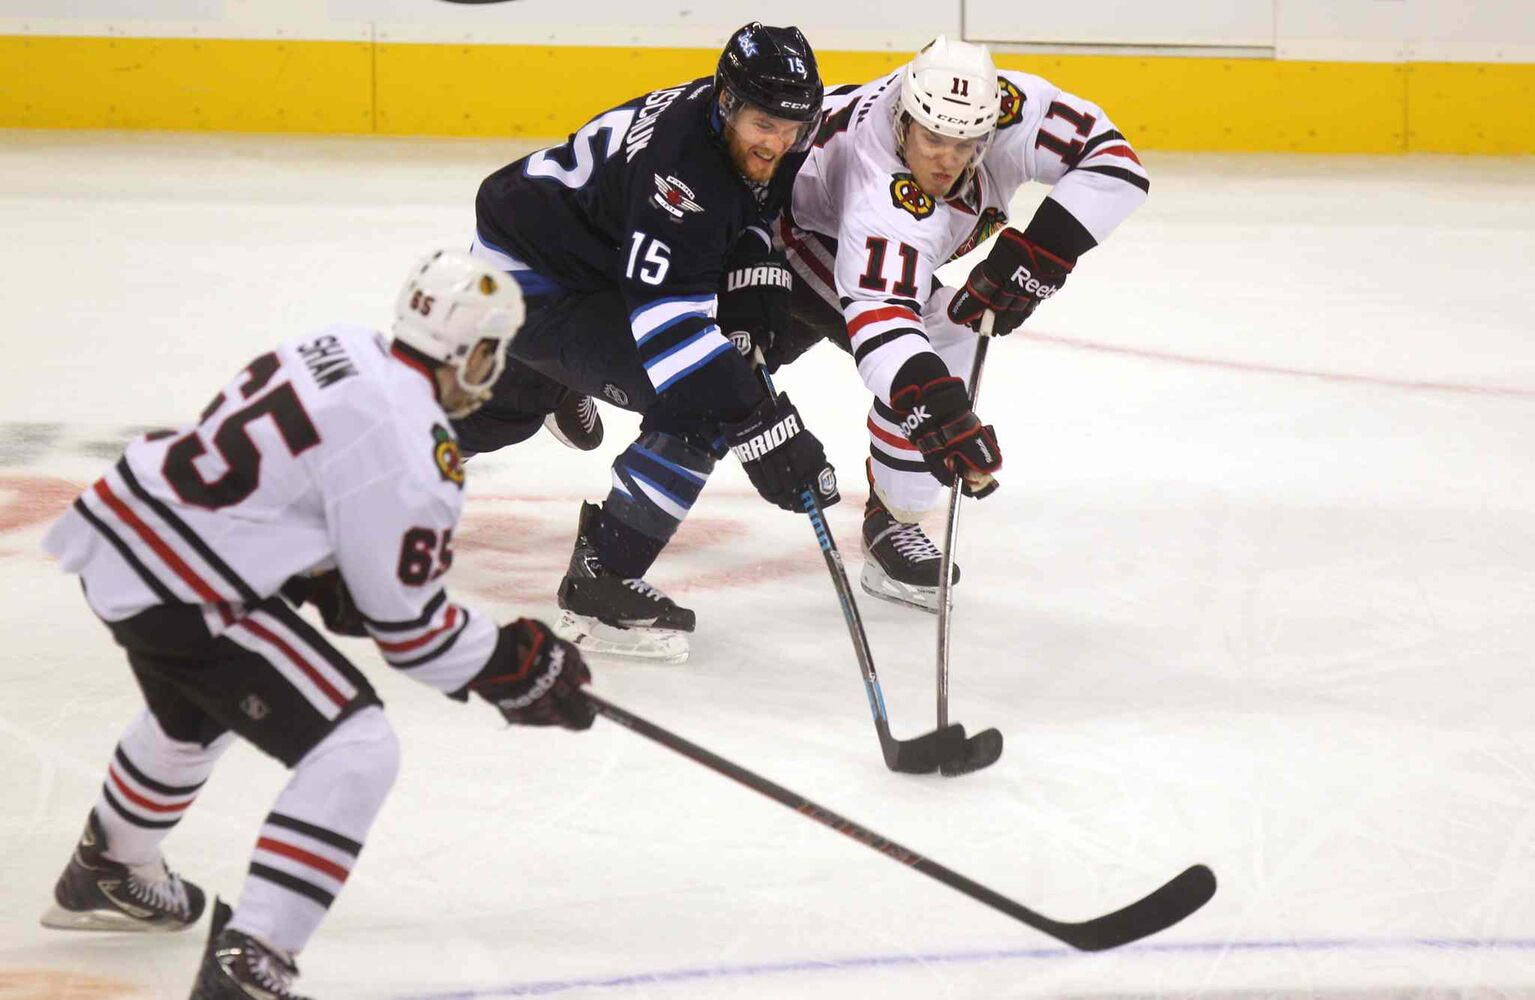 Matt Halischuk (centre) tries to get the puck from Jeremy Morin (right) during the third period.